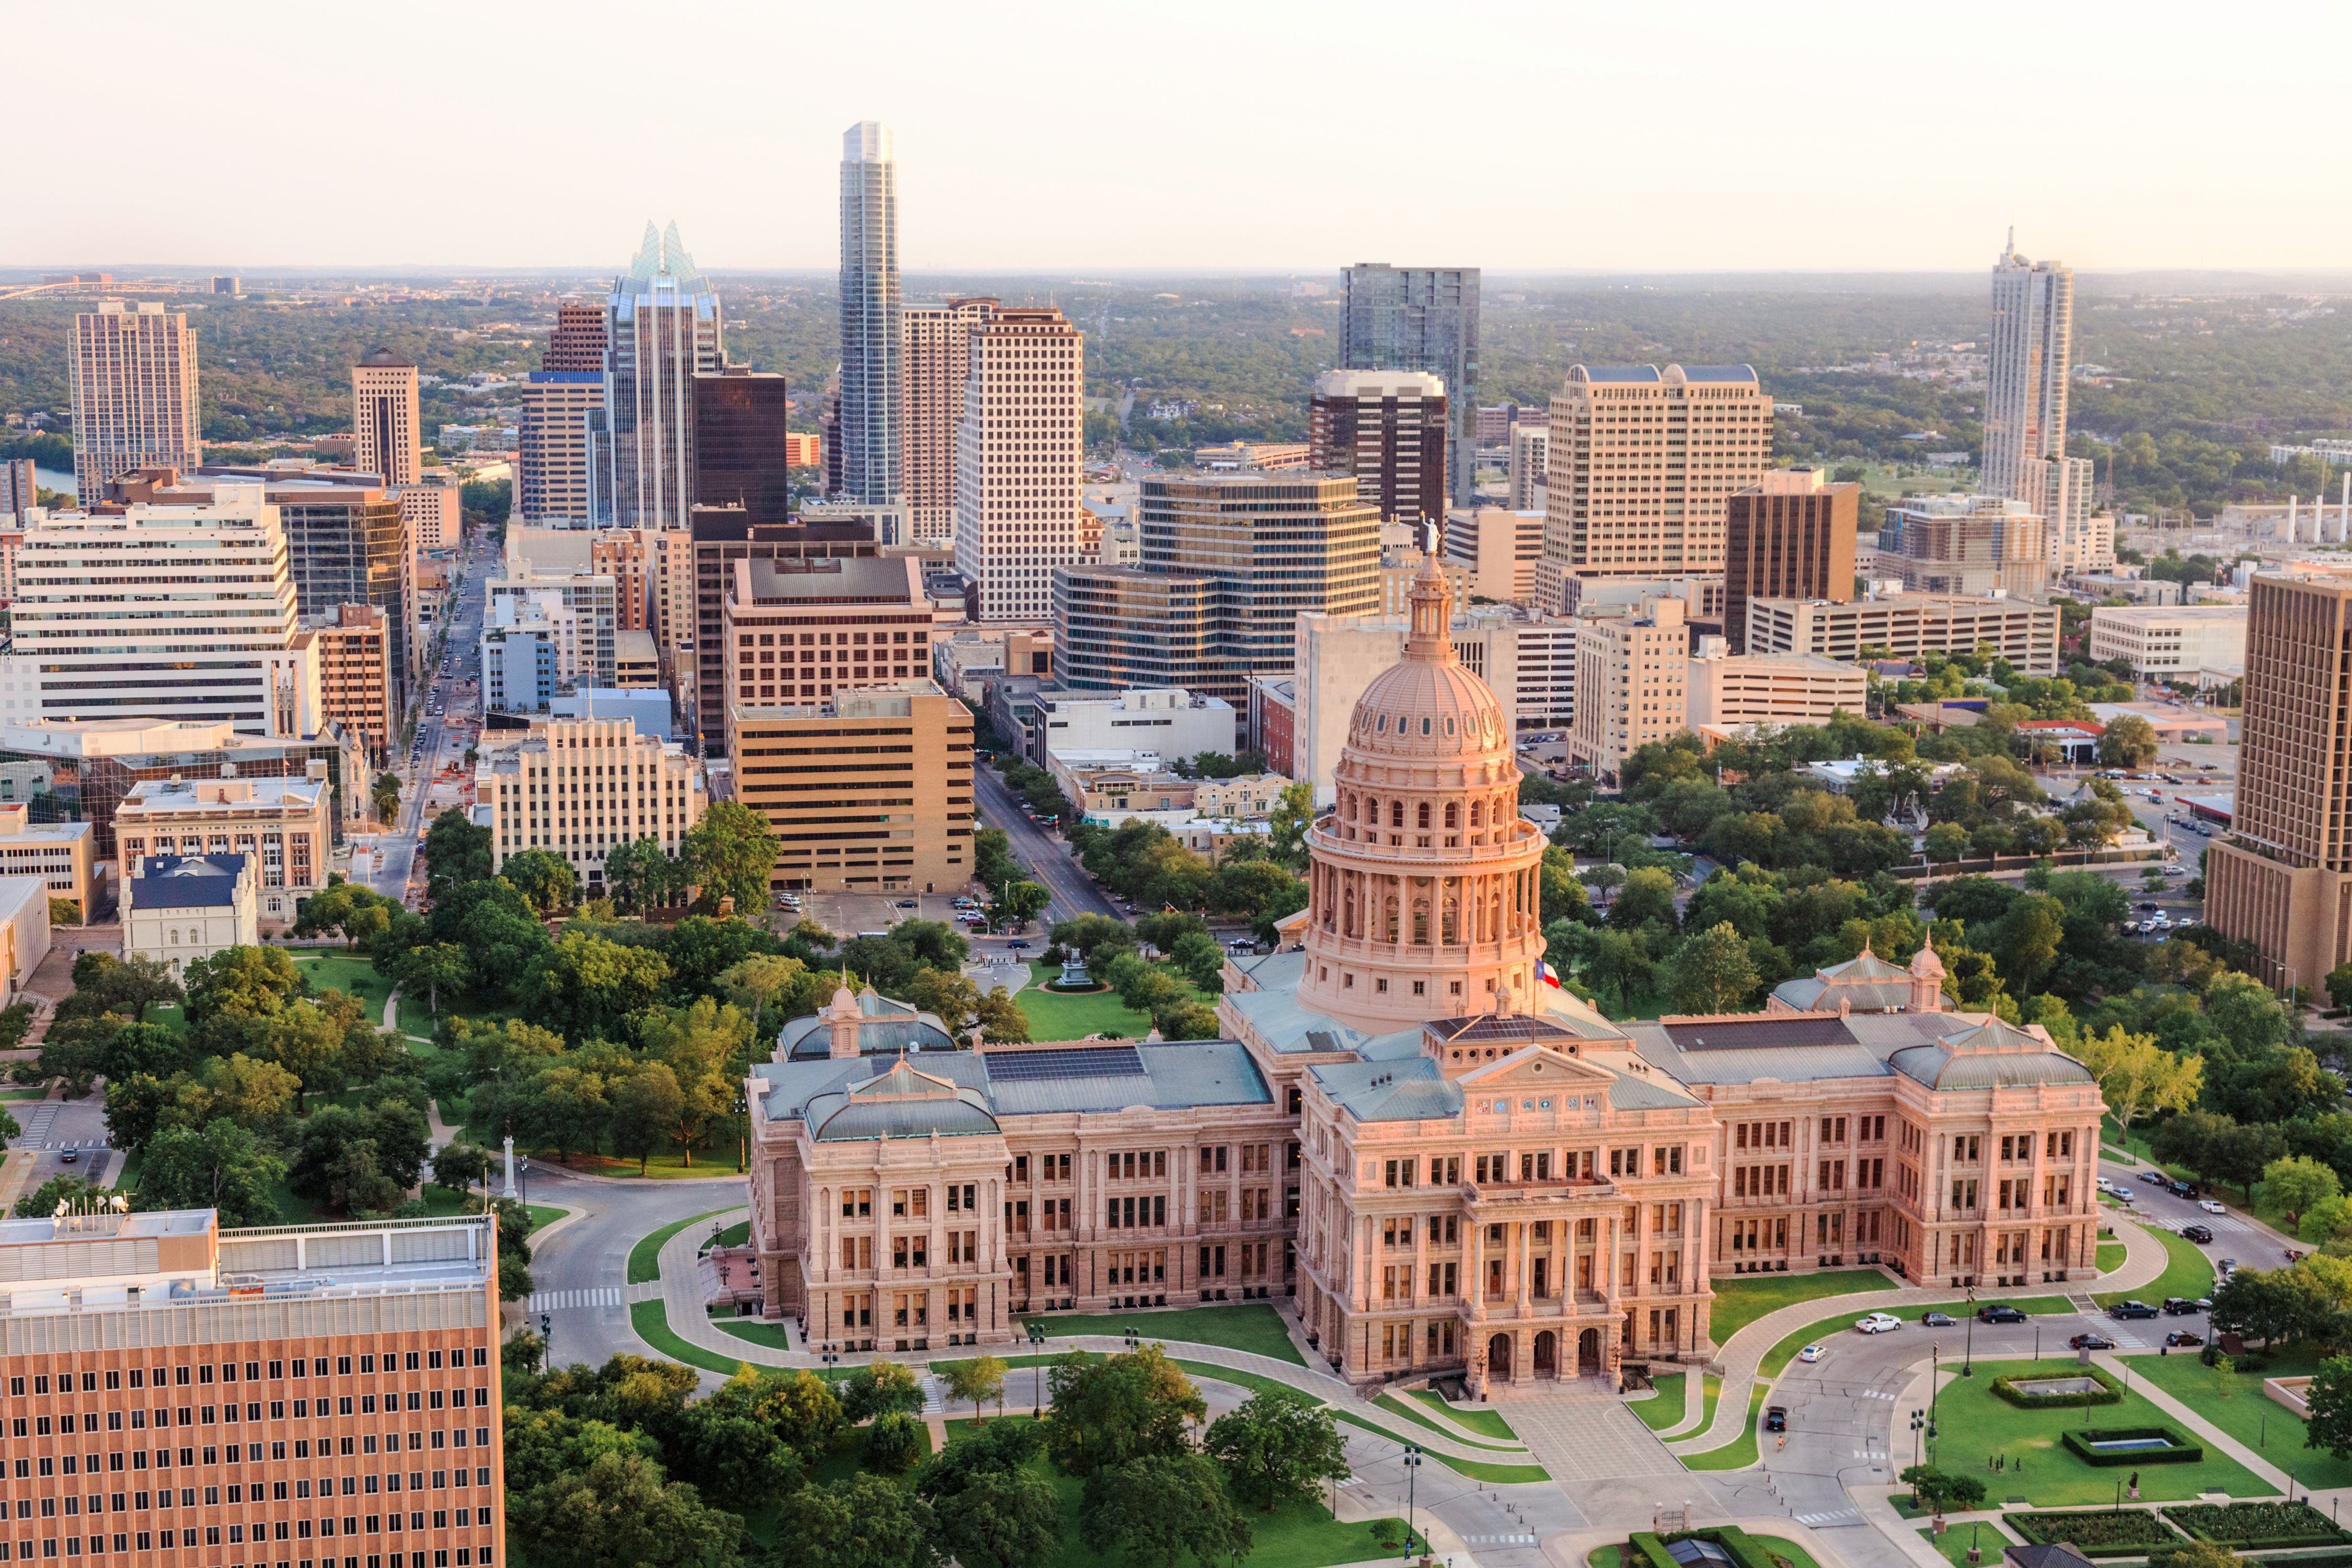 Looking to Move? These Are the Best State Capitals in the U.S.